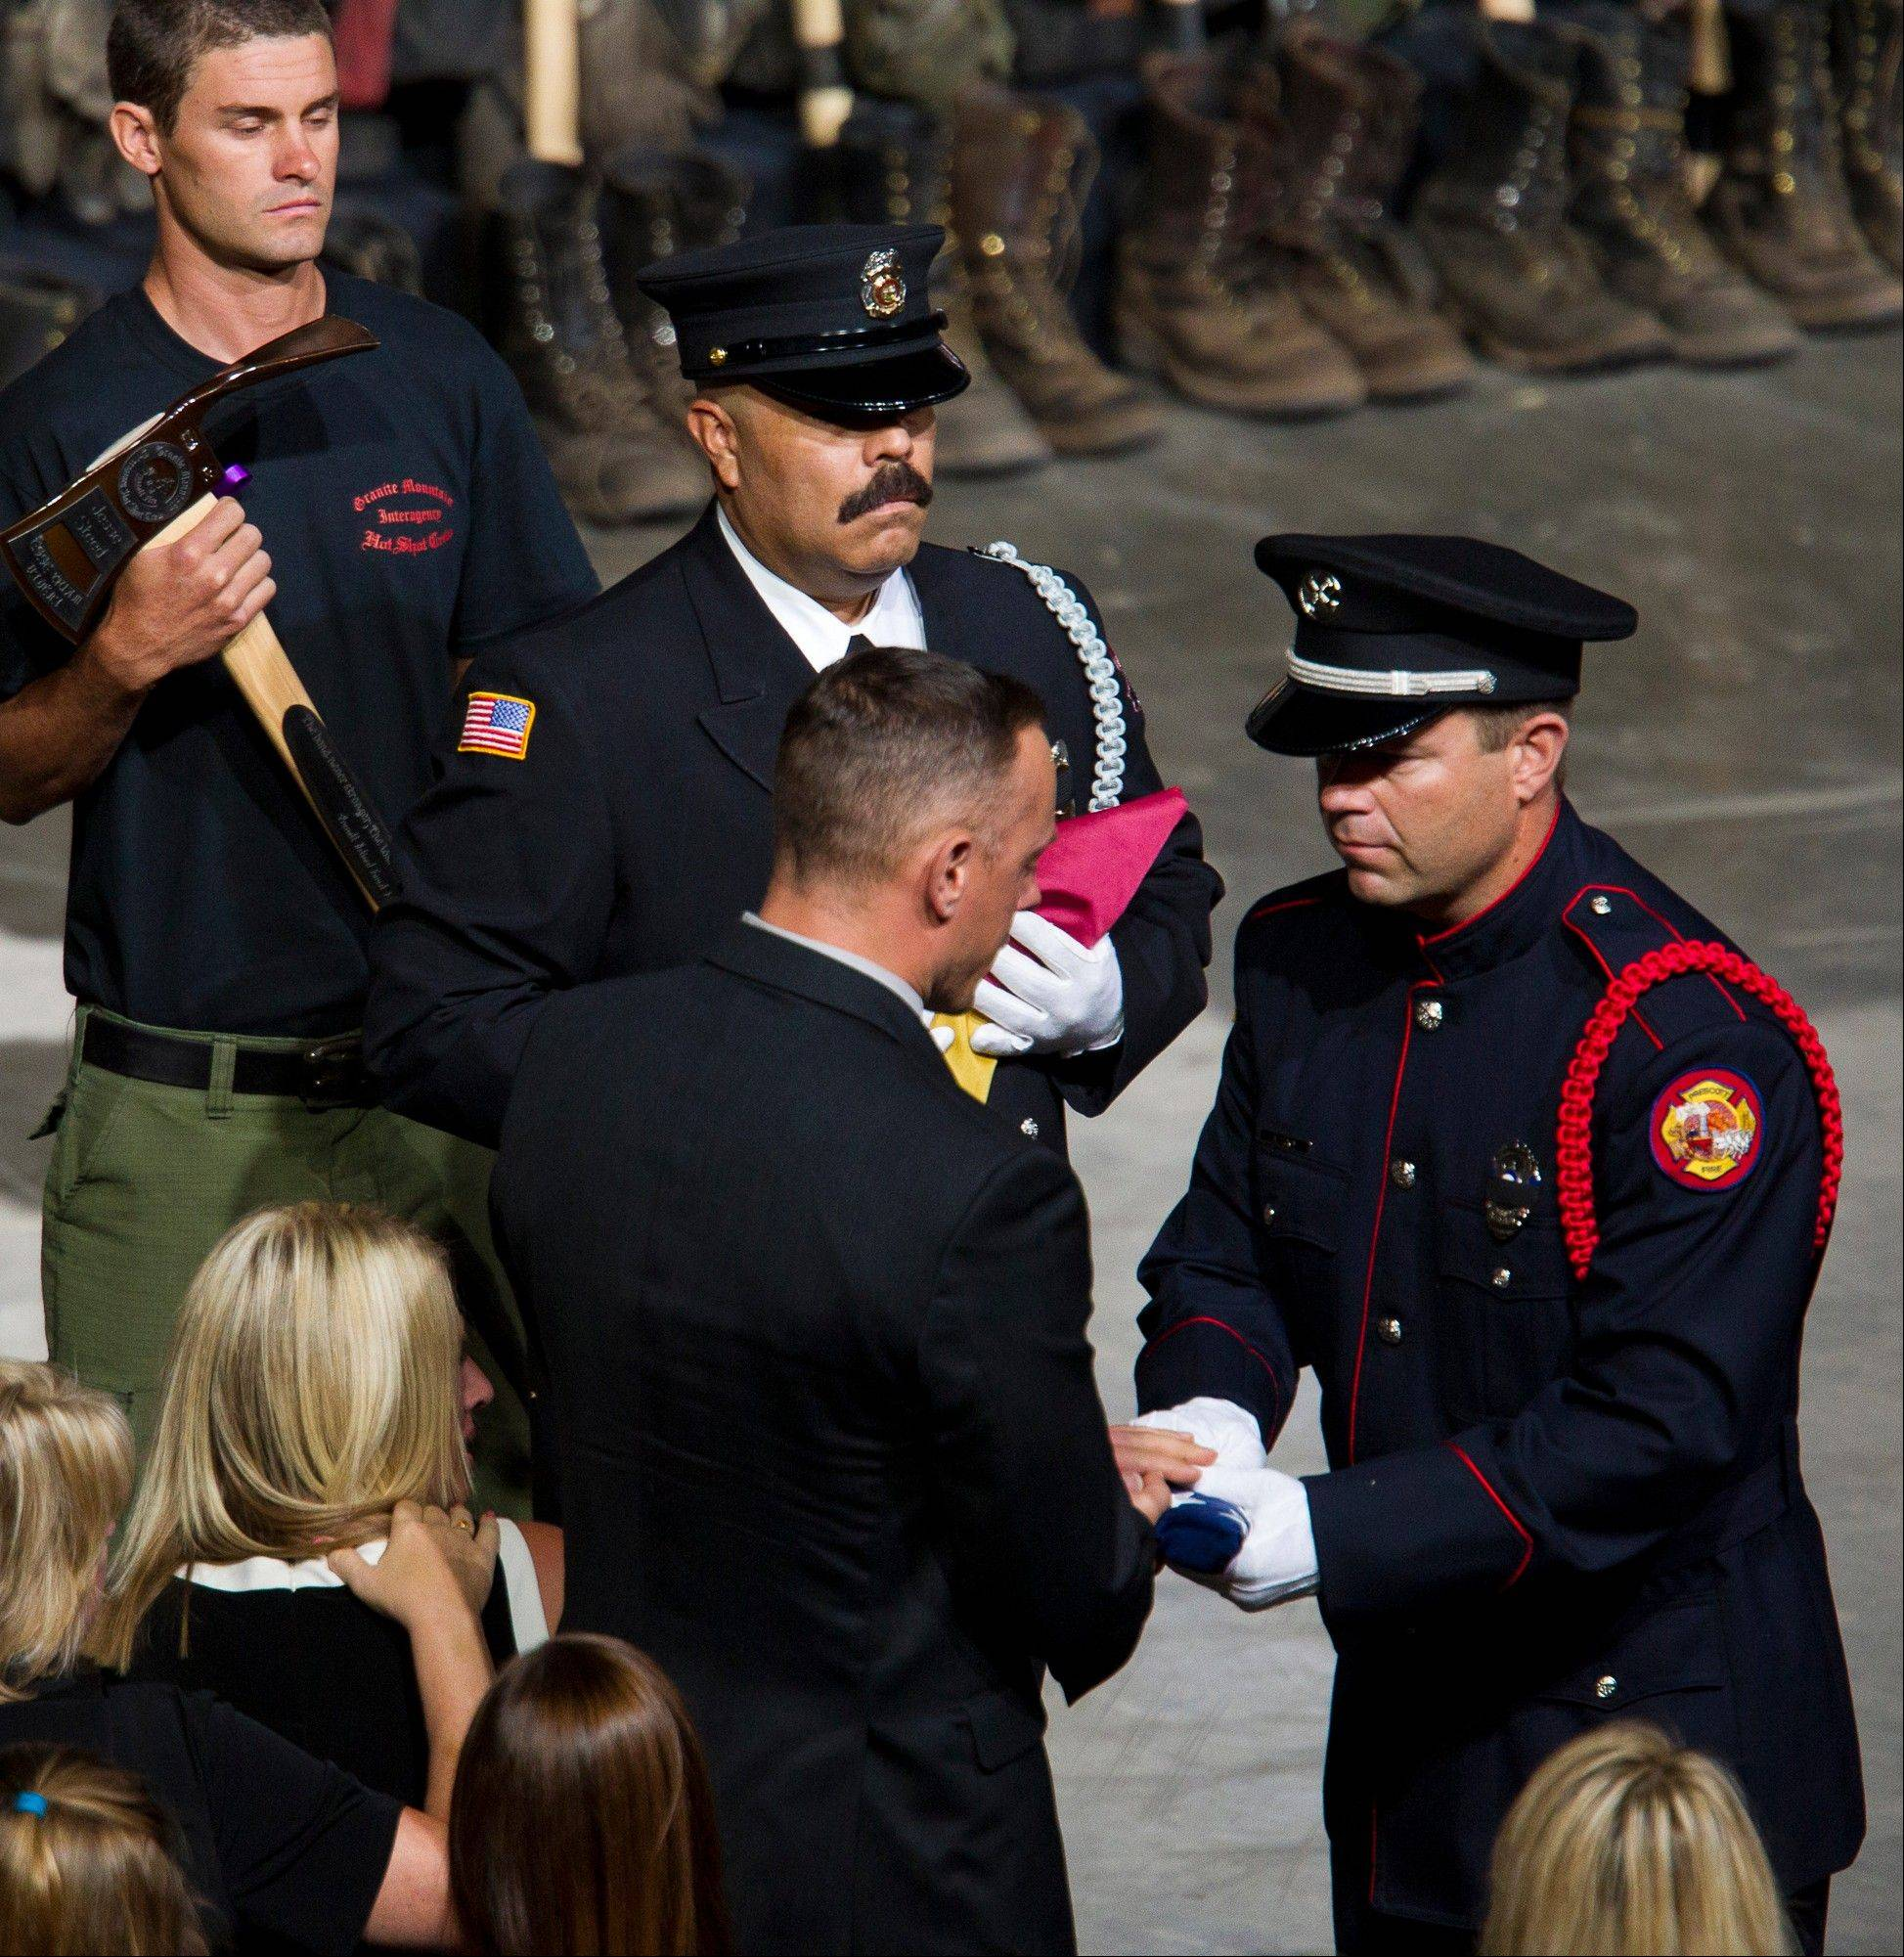 A flag is presented to the family of fallen firefighter Jesse Steed during a memorial service for the 19 fallen firefighters at Tim's Toyota Center in Prescott Valley, Ariz. on Tuesday, July 9, 2013.